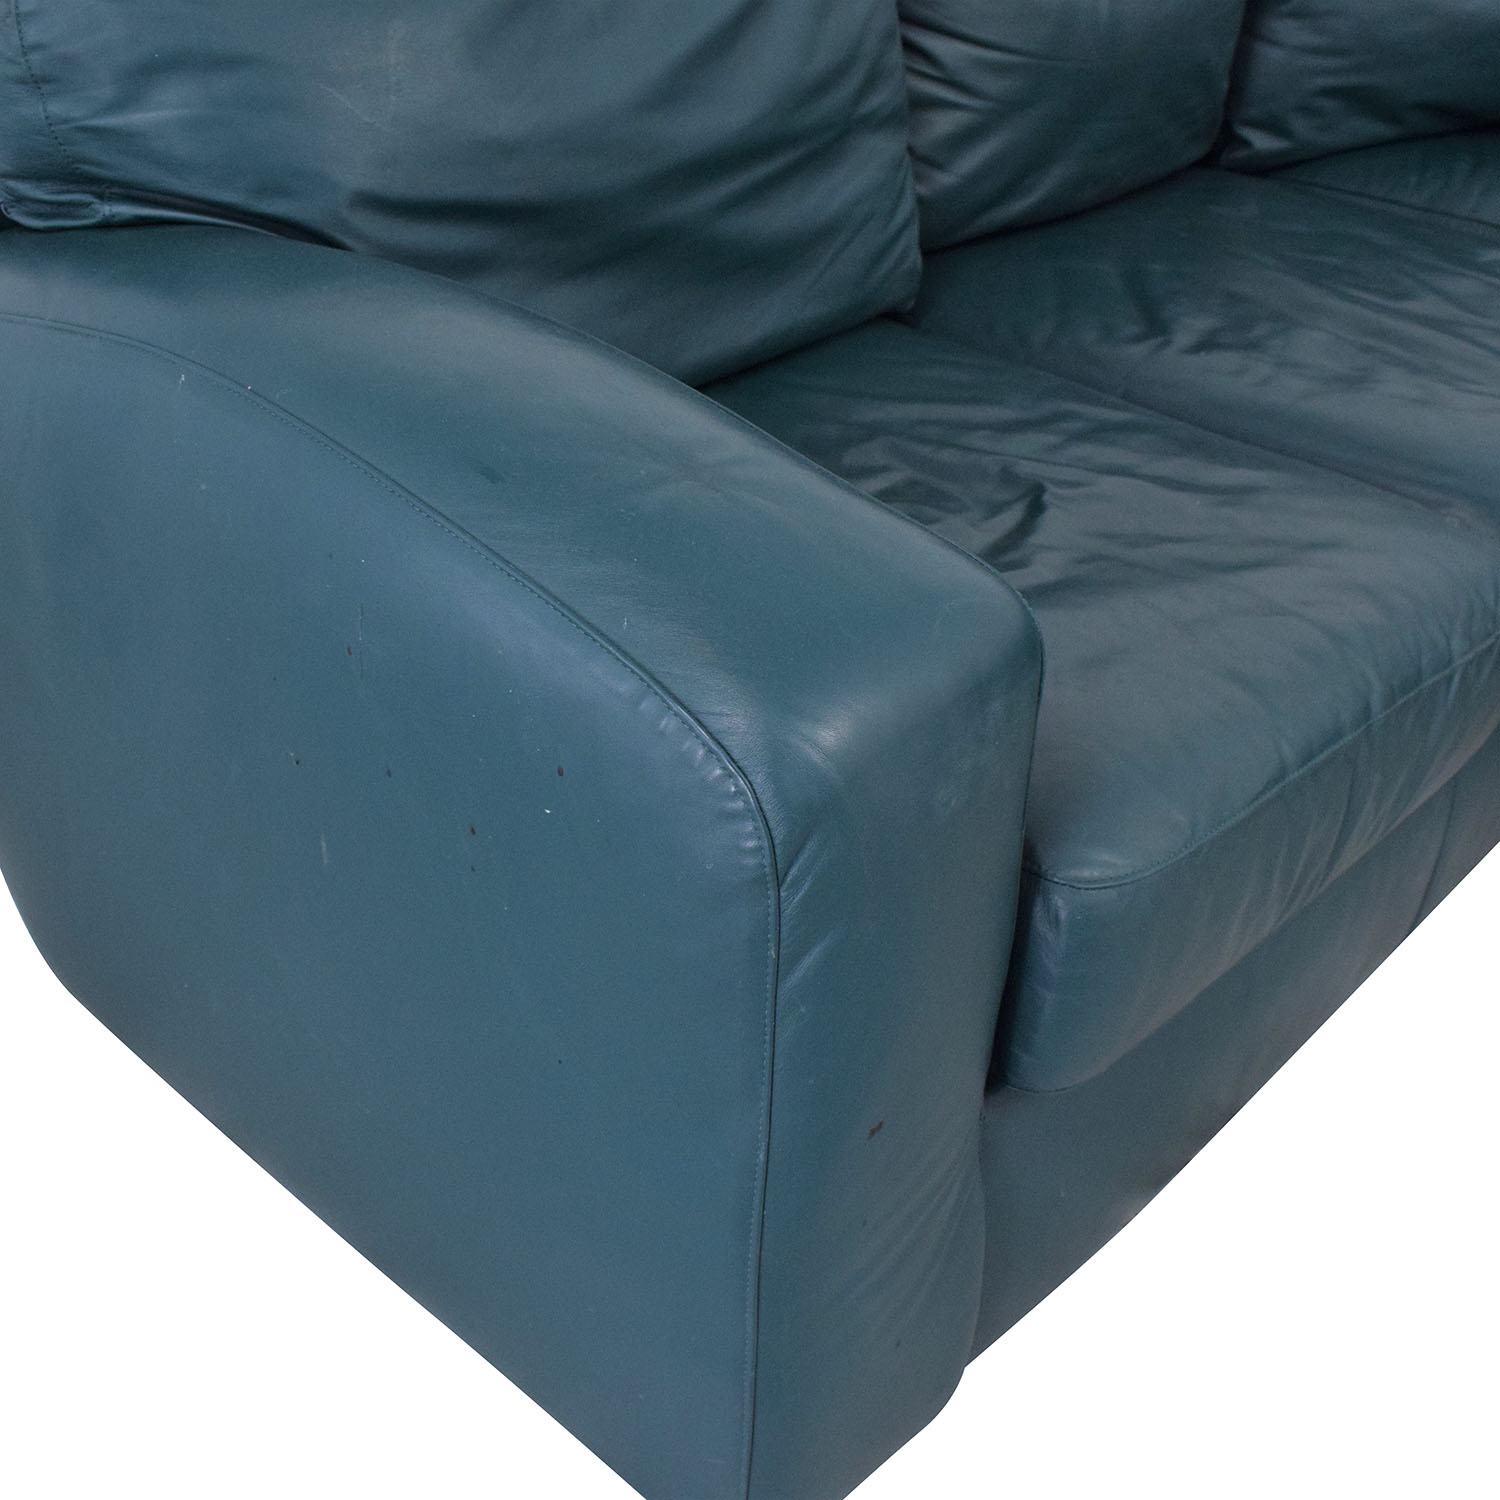 Carson Carson's Five Seat L-Shape Sectional used